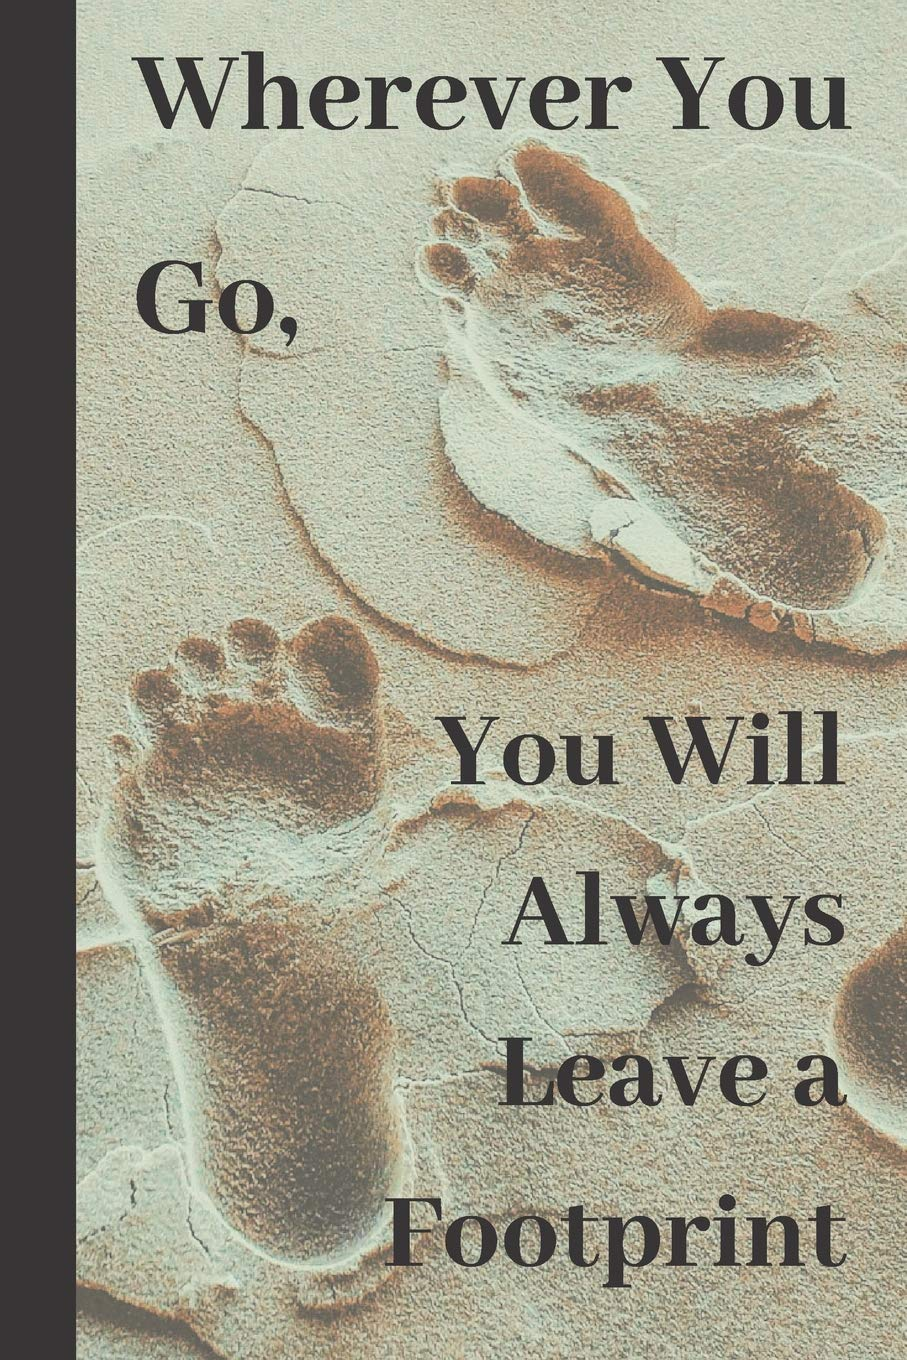 Wherever You Go, You Will Always Leave a Footprint: Footprints In The Sand  Journal - Motivational & Inspirational Quotes - Caribbean Tropical Beach:  Journals, Wild: 9781074952754: Amazon.com: Books